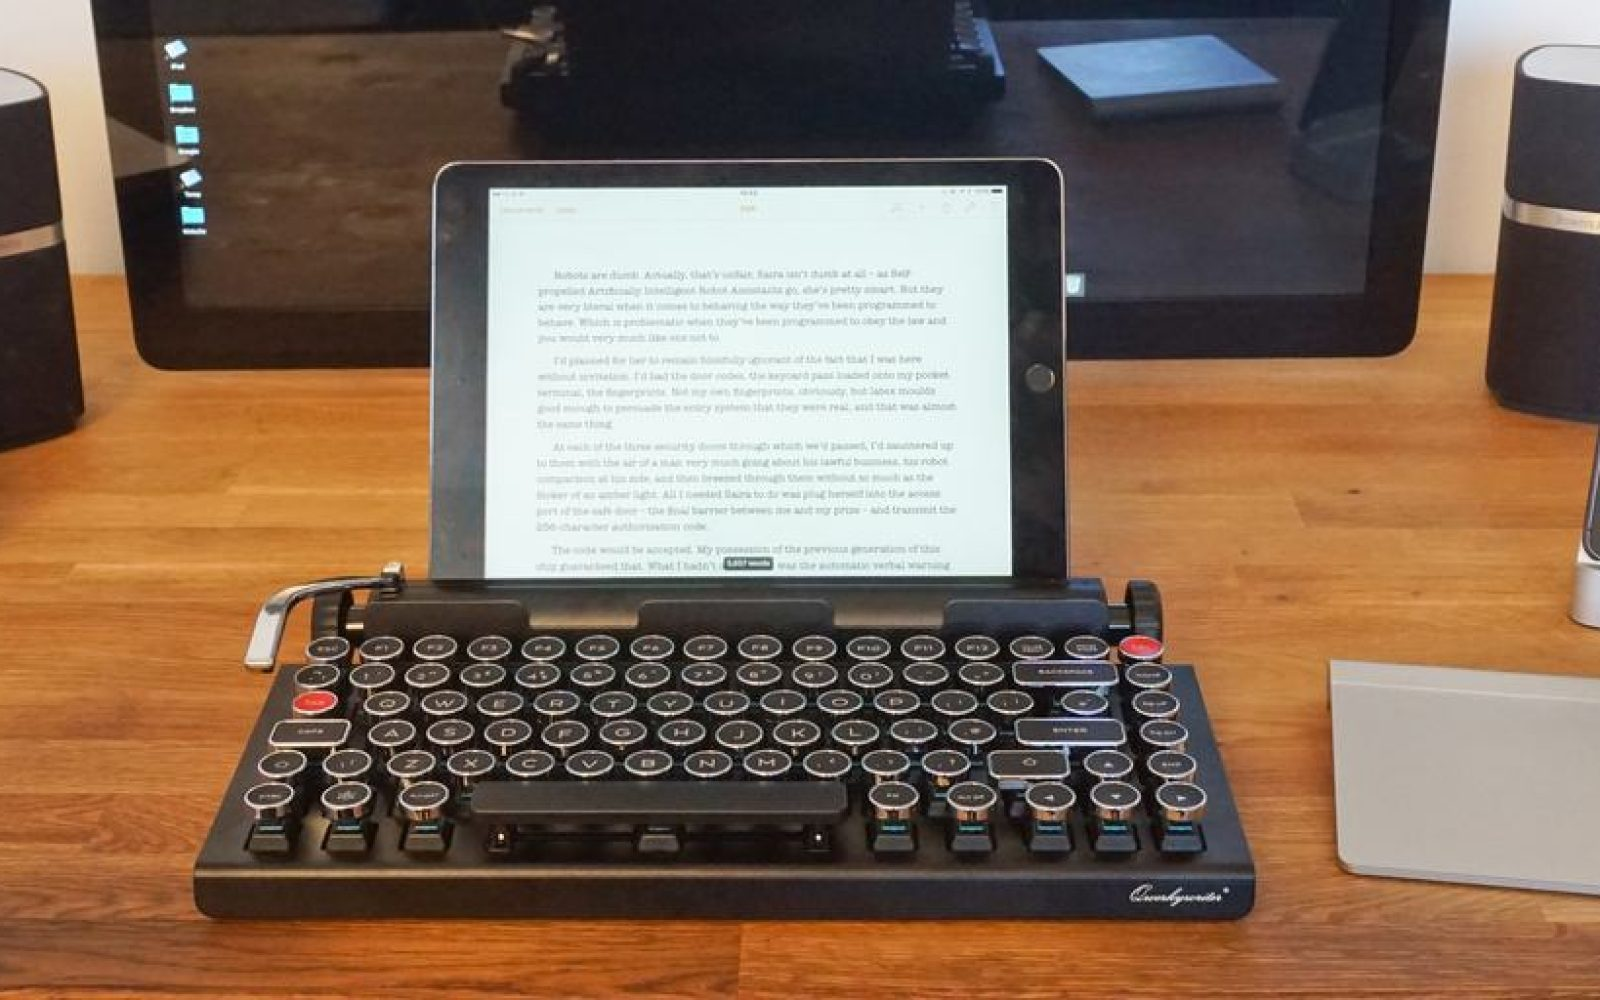 b3599591f9e Review: Qwerkywriter, the Bluetooth keyboard that thinks it's a typewriter